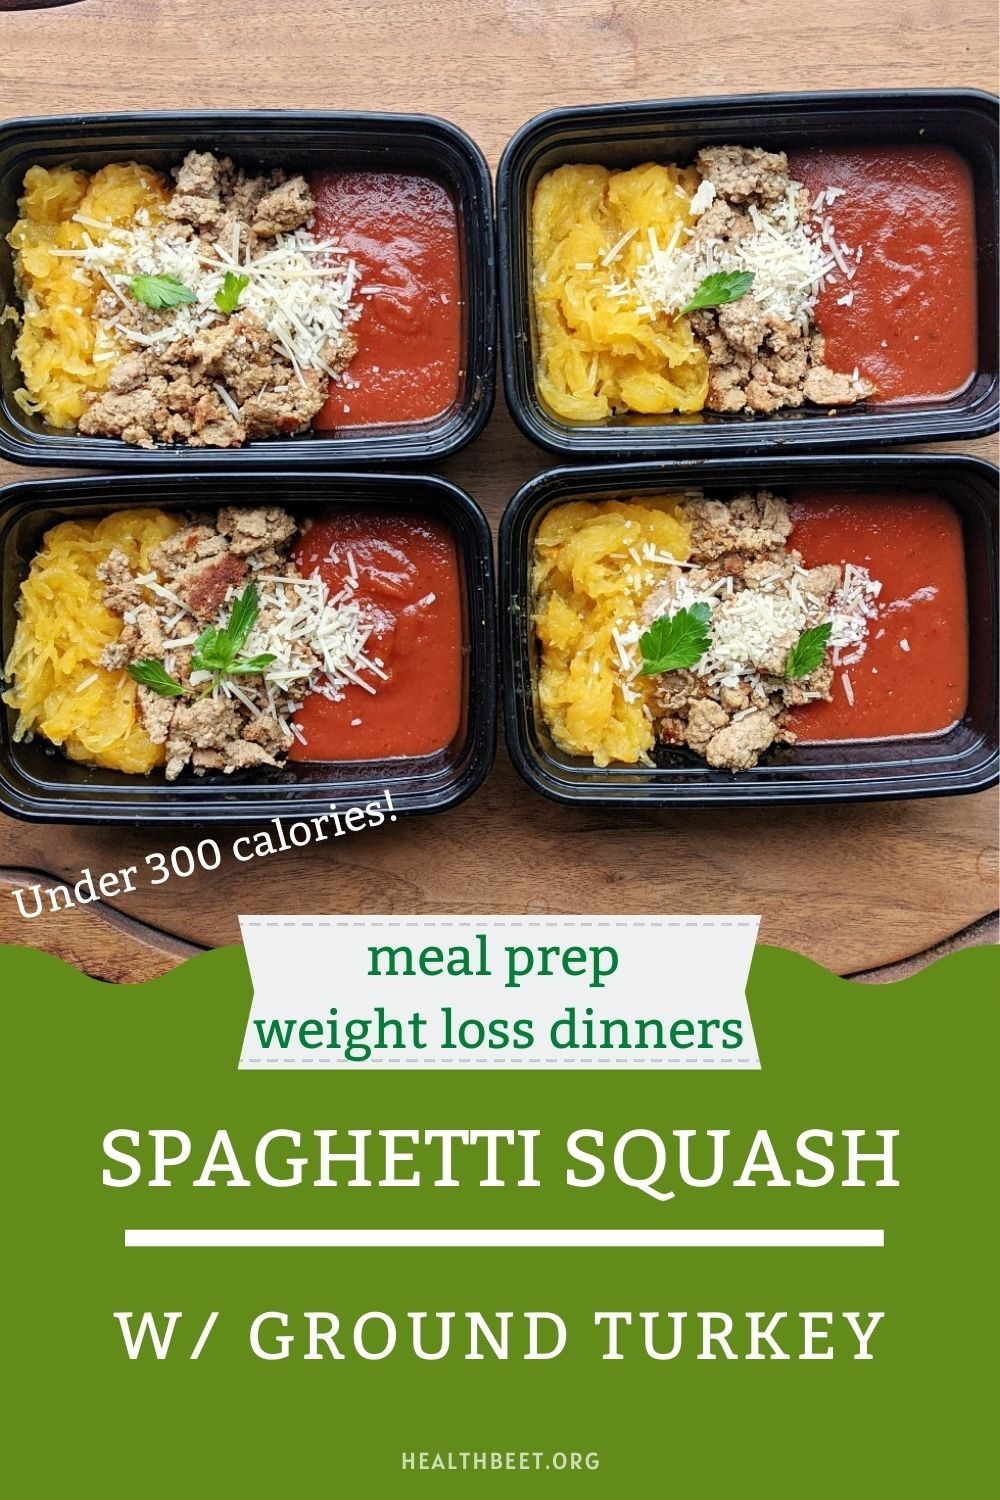 spaghetti squash with ground turkey weight loss dinner idea under 300 calories with bitter